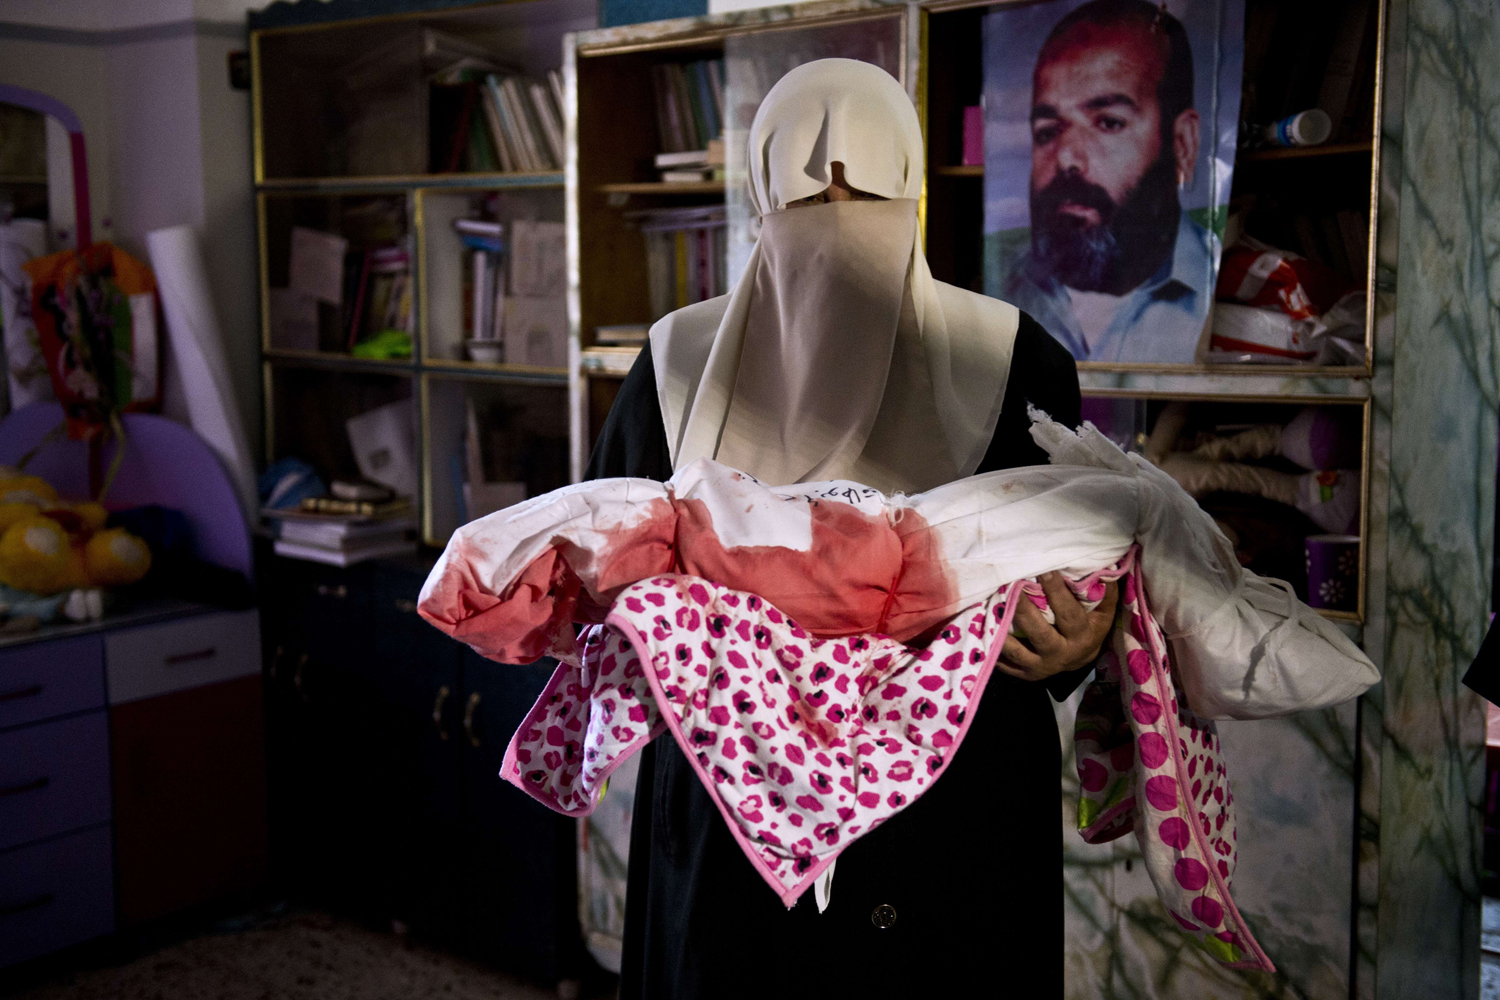 Aug. 24, 2014. A Palestinian woman holds the body of a one-and-a-half year old girl after her body was brought to the family house from the morgue before the funeral procession in Gaza City.